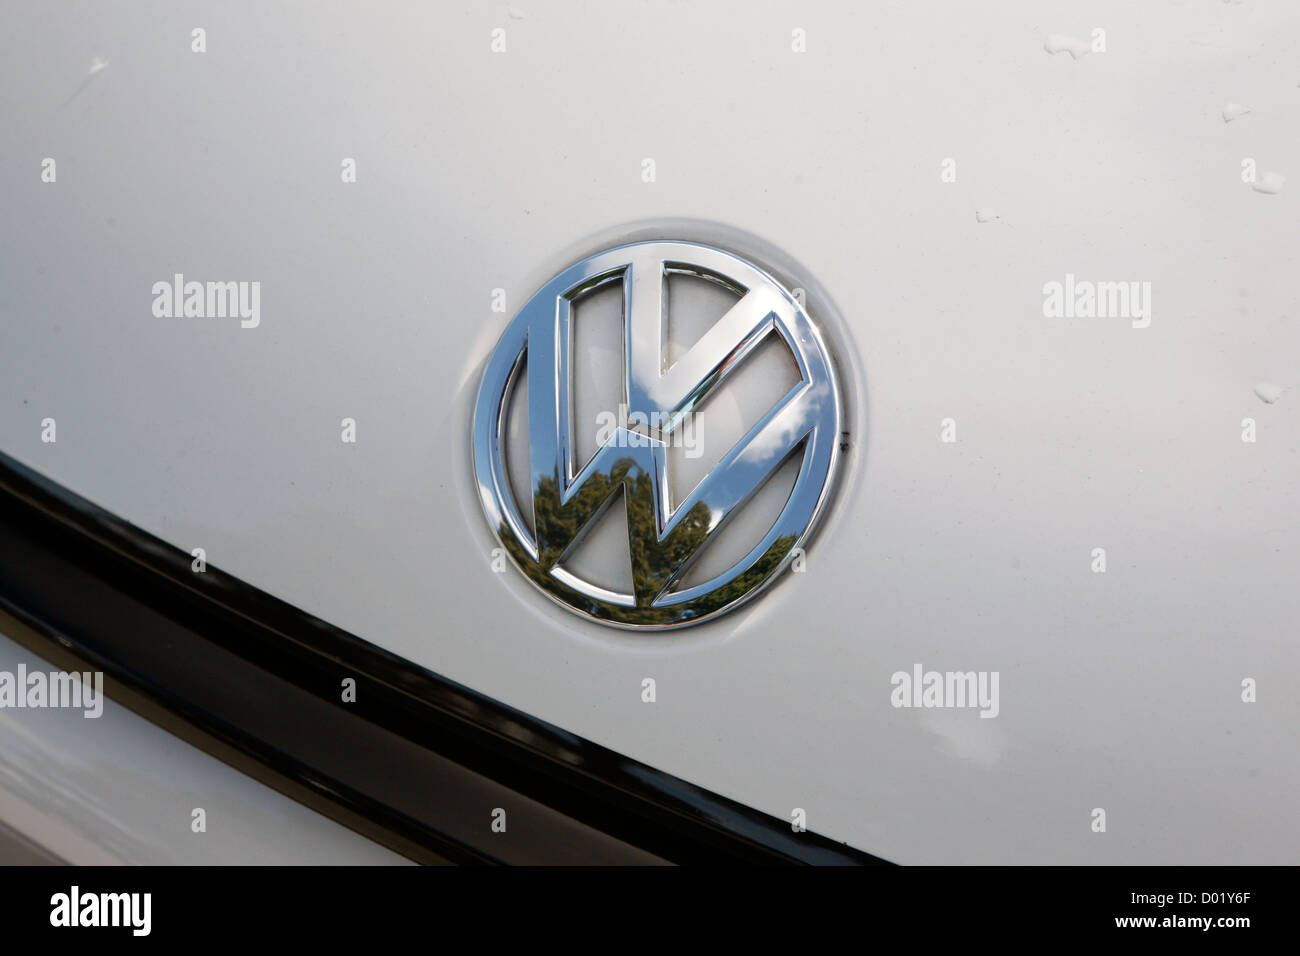 A silver Volkswagen badge as seen on the bonnet of a VW. - Stock Image